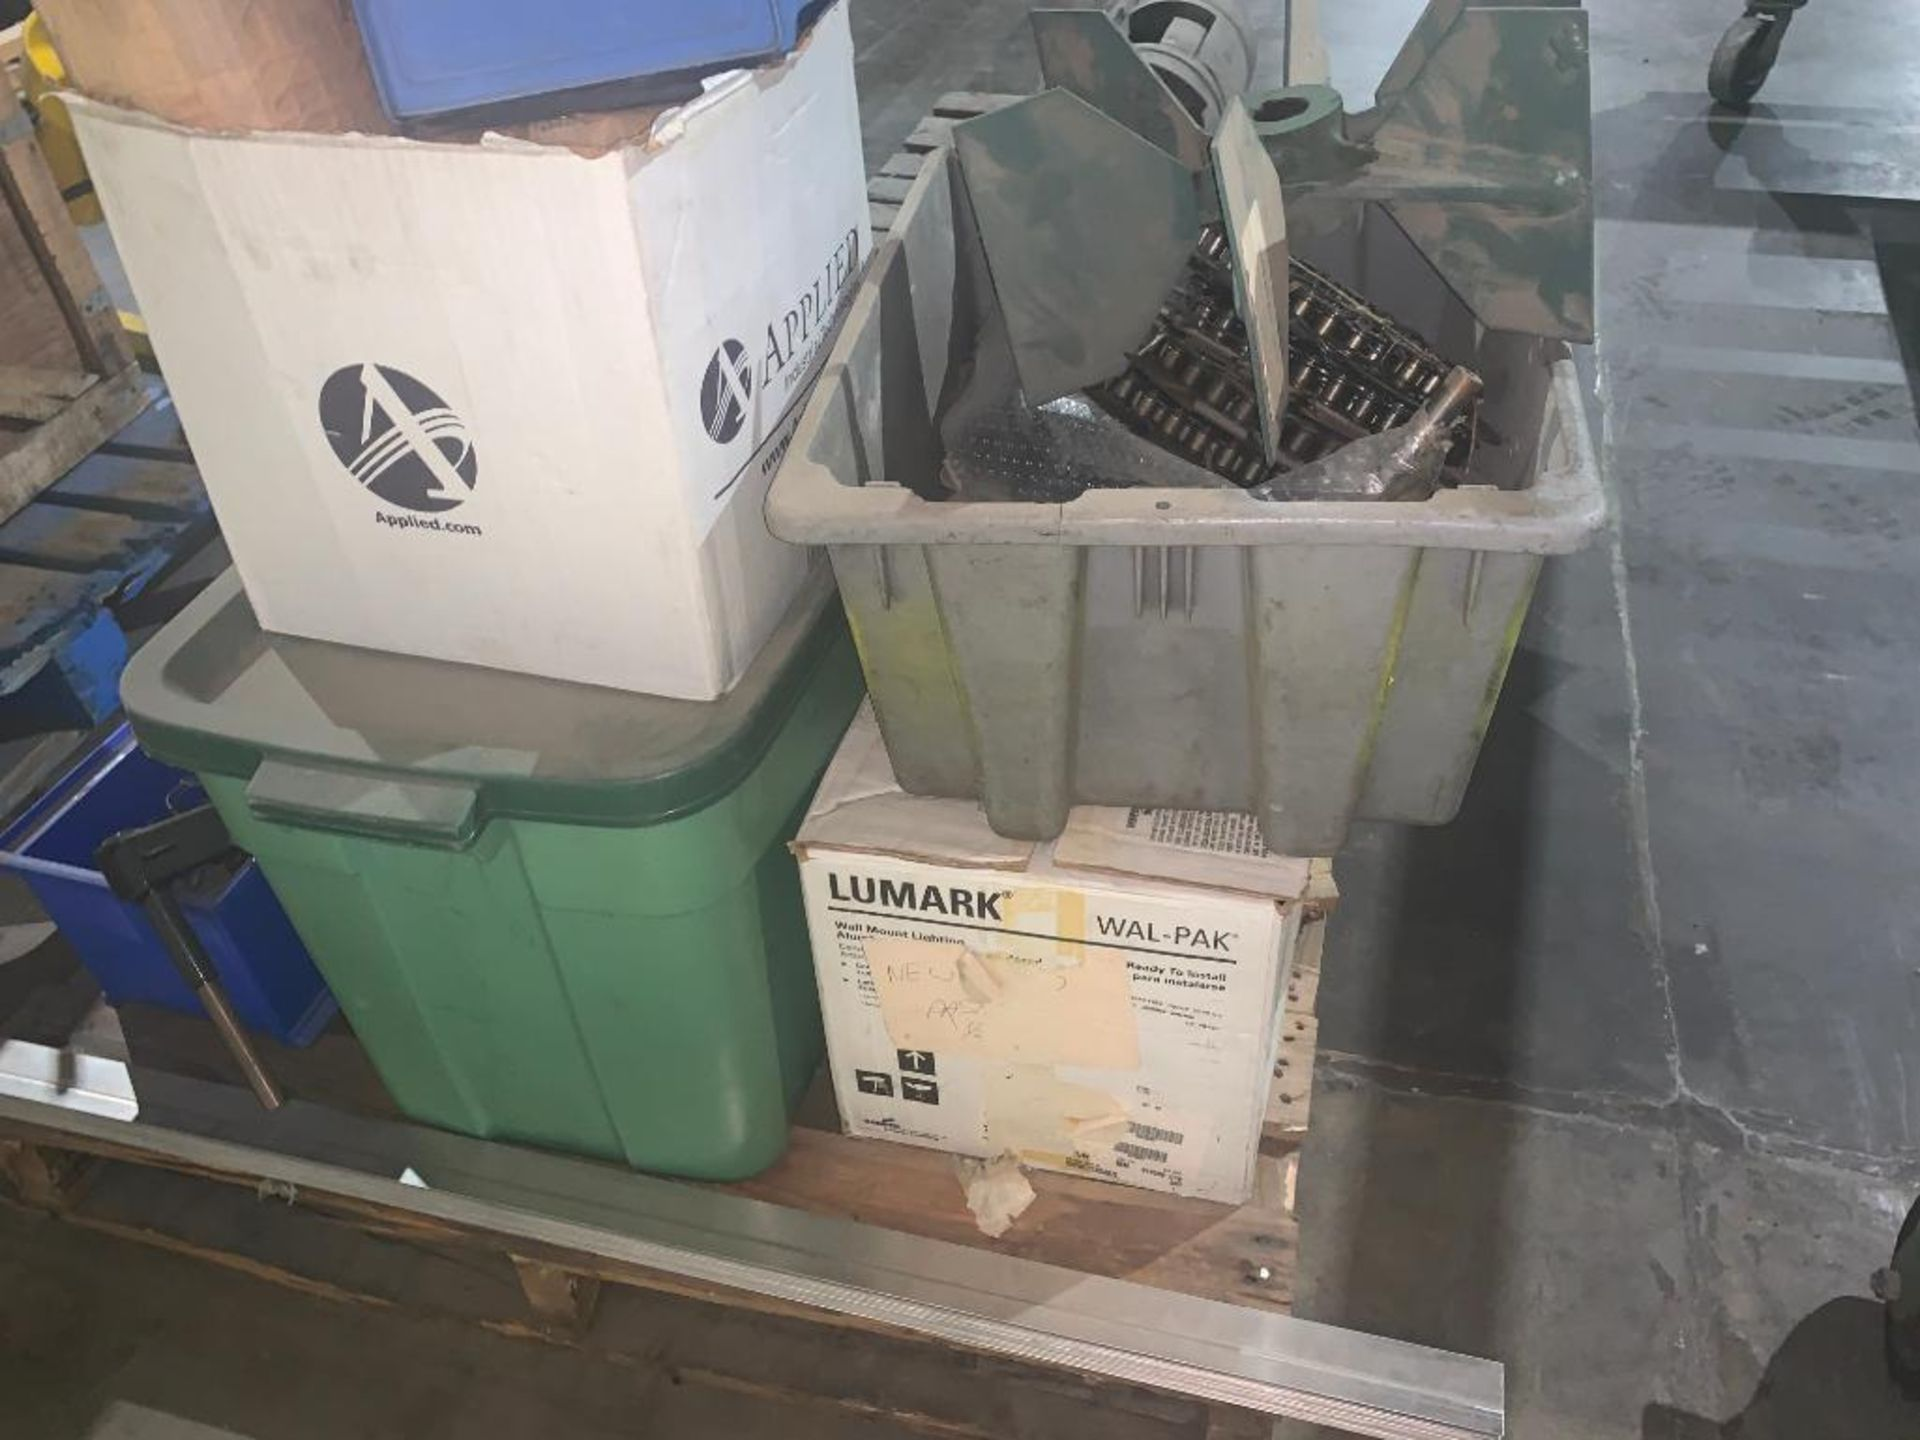 pallet of various parts - Image 8 of 9